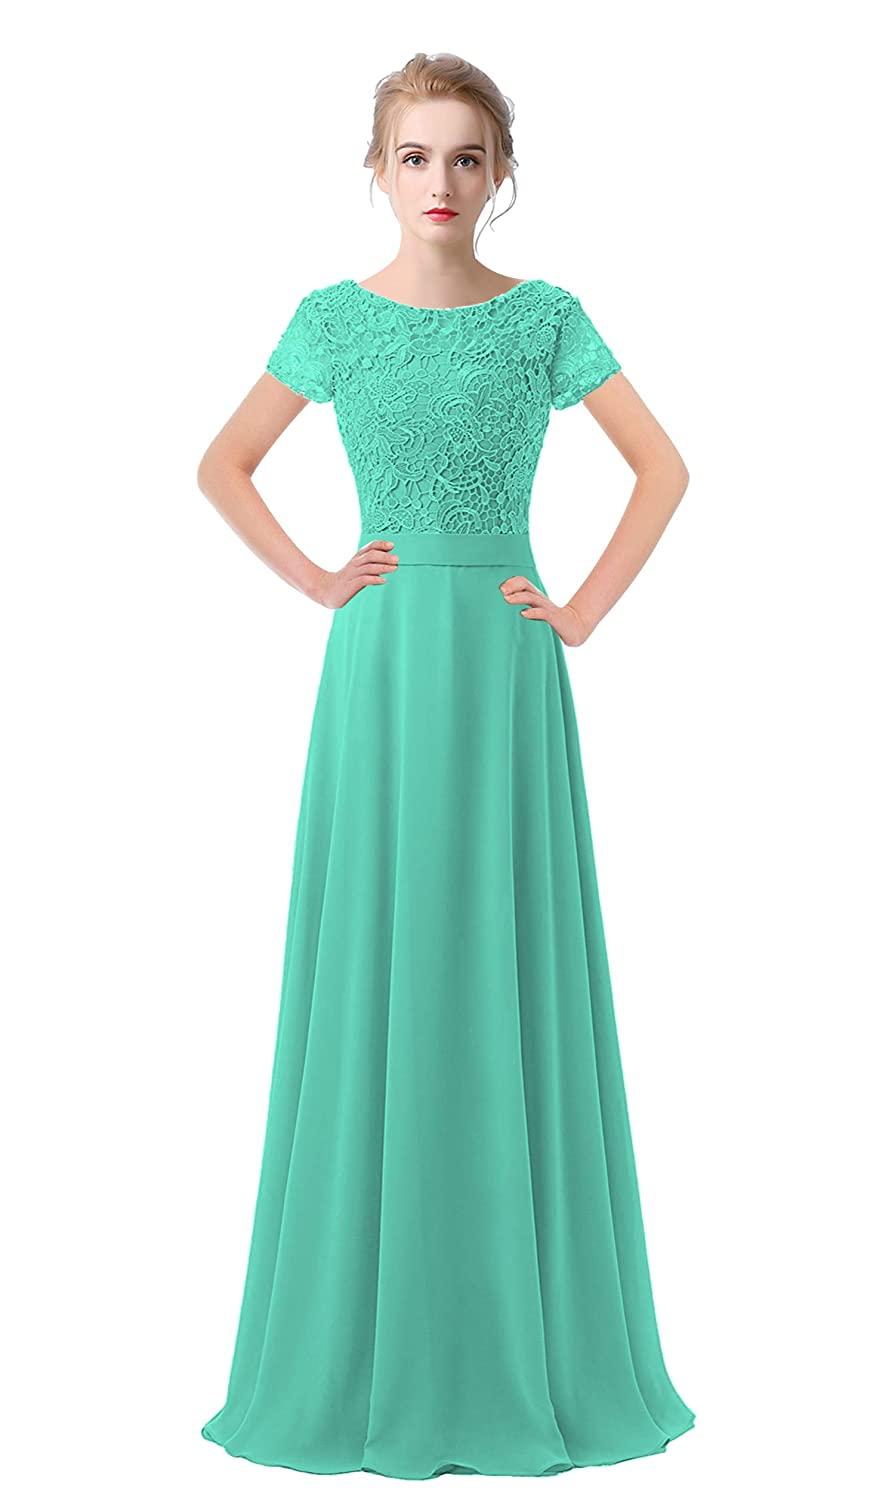 Turquoise VaniaDress Women Lace Short Sleeves Long Evening Dress Prom Gown V061LF